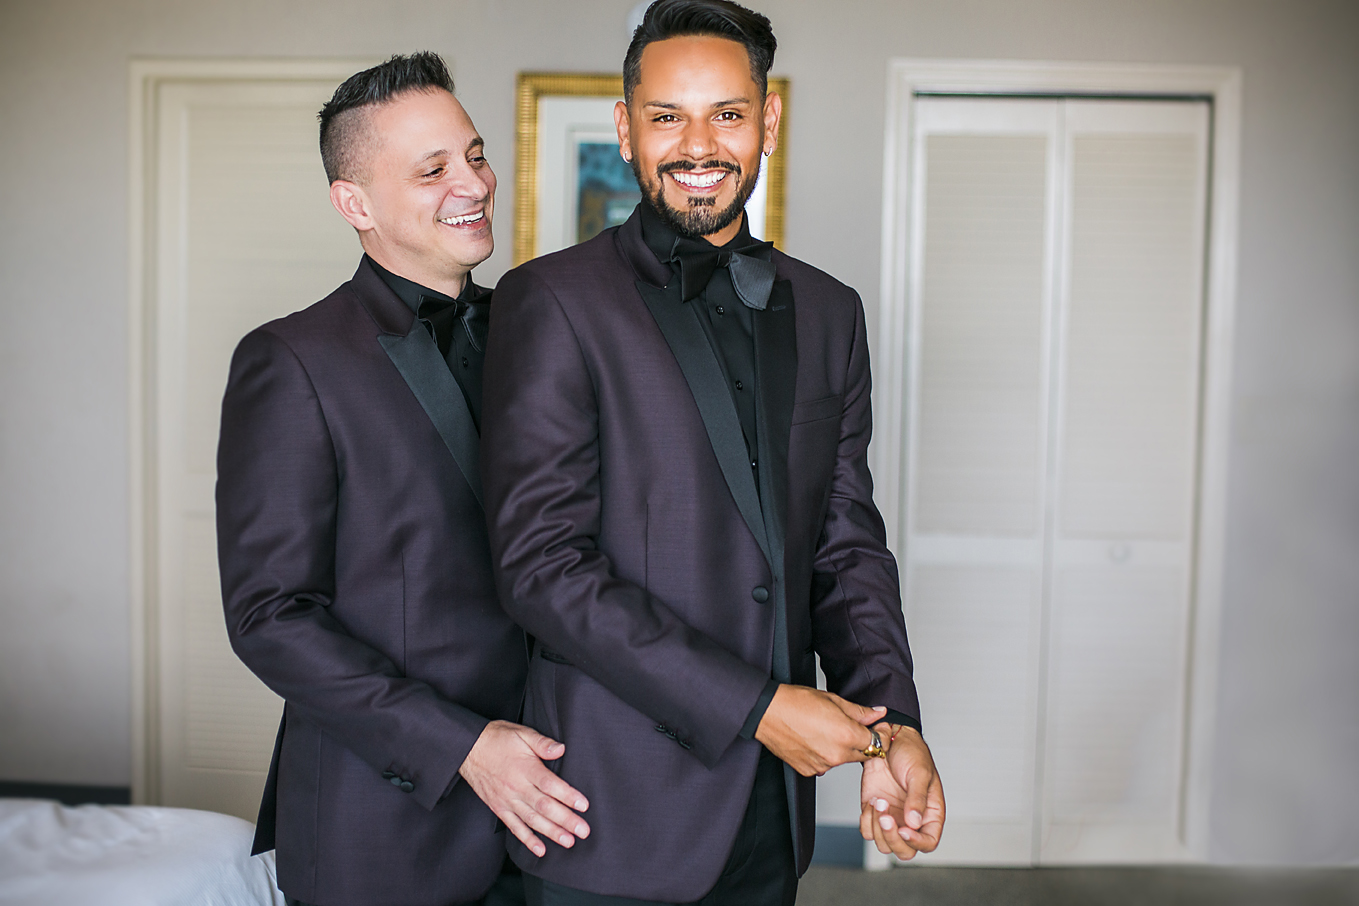 Javier and Michael, Miami Wedding Photography, Destination Wedding Photographer, Emily & Co. Photography, Two Grooms, Same Sex Wedding Photographer (34).jpg